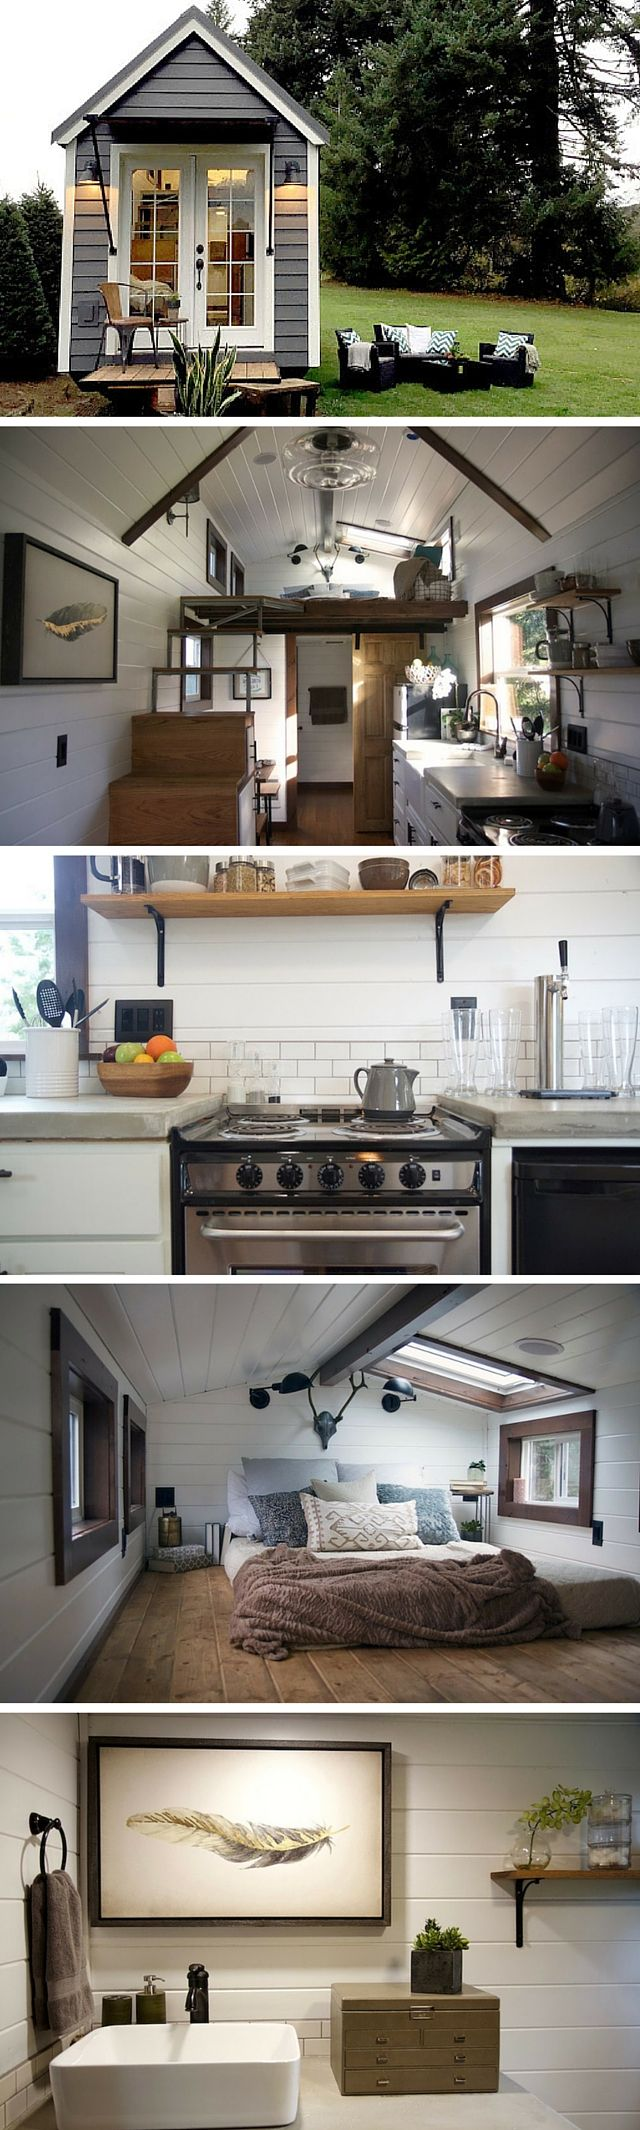 the nw haven tiny house by tiny heirloom tiny home obsession